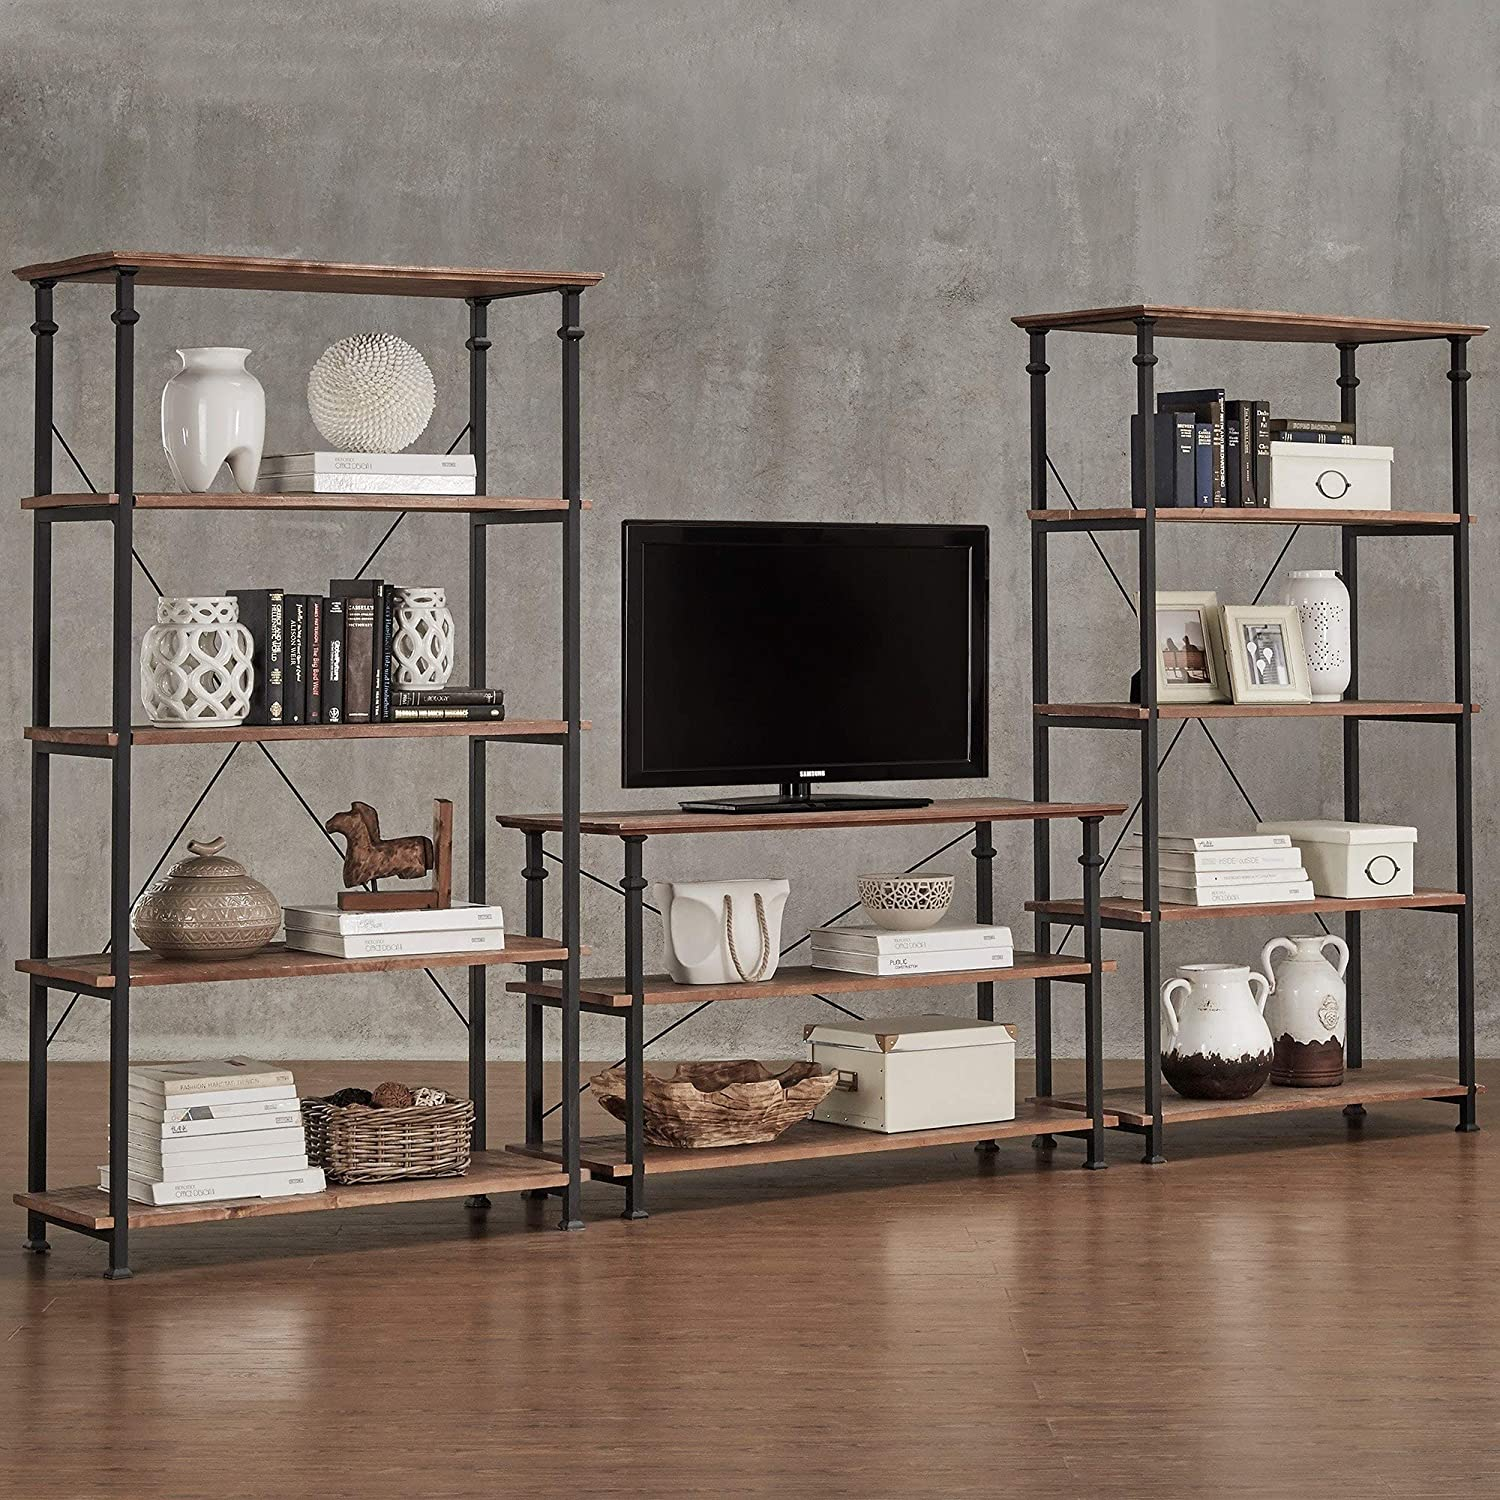 Vintage Industrial Modern Rustic 3-Piece Tv Stand 40-inch Bookcase Set Brown Transitional Metal Wood Finish